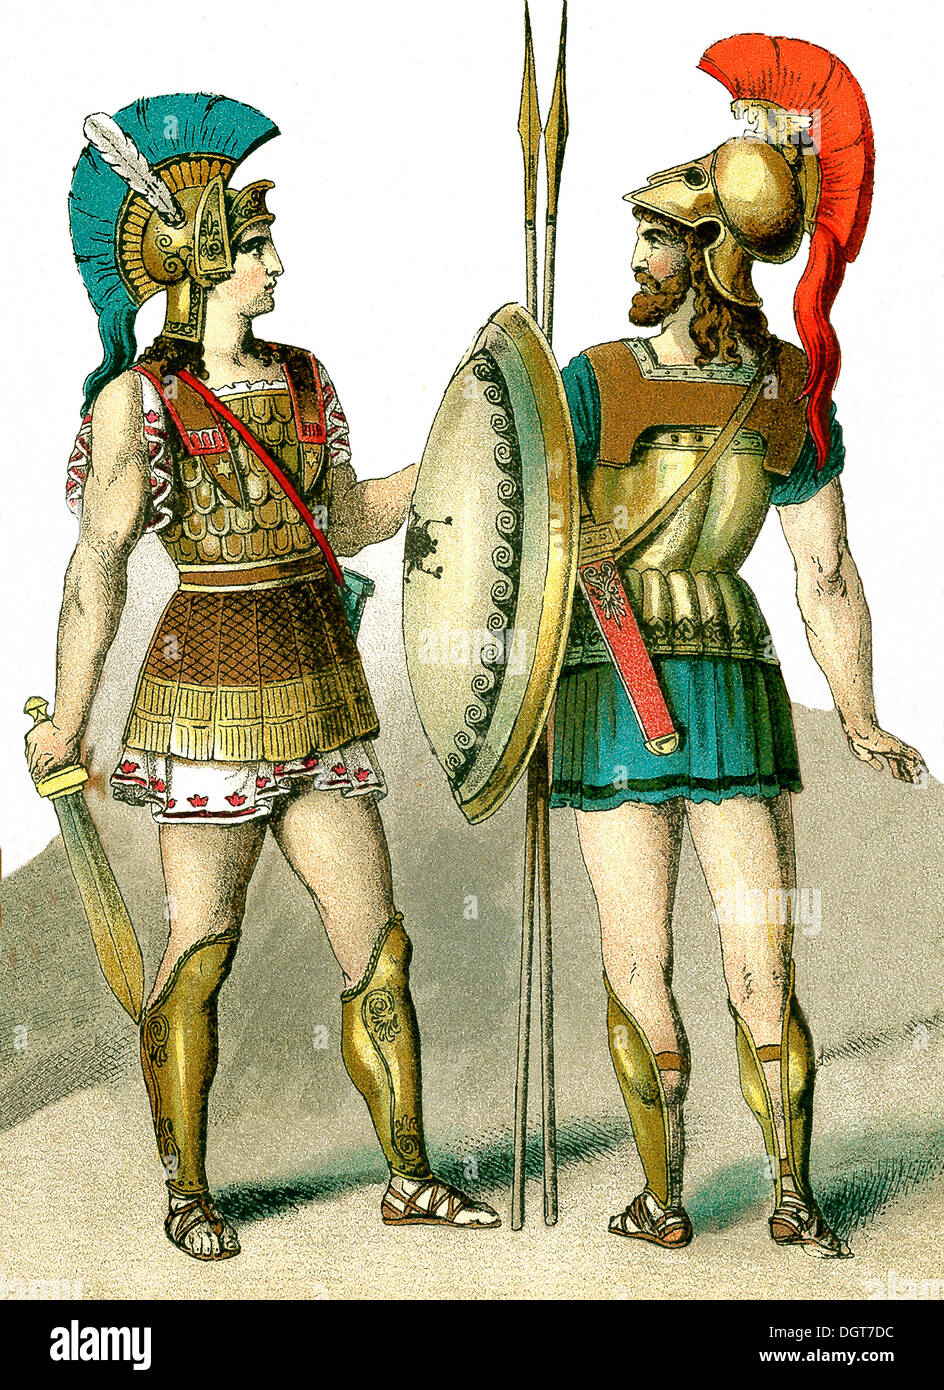 The illustration, which dates to 1882, depicts two ancient Greek warriors. - Stock Image